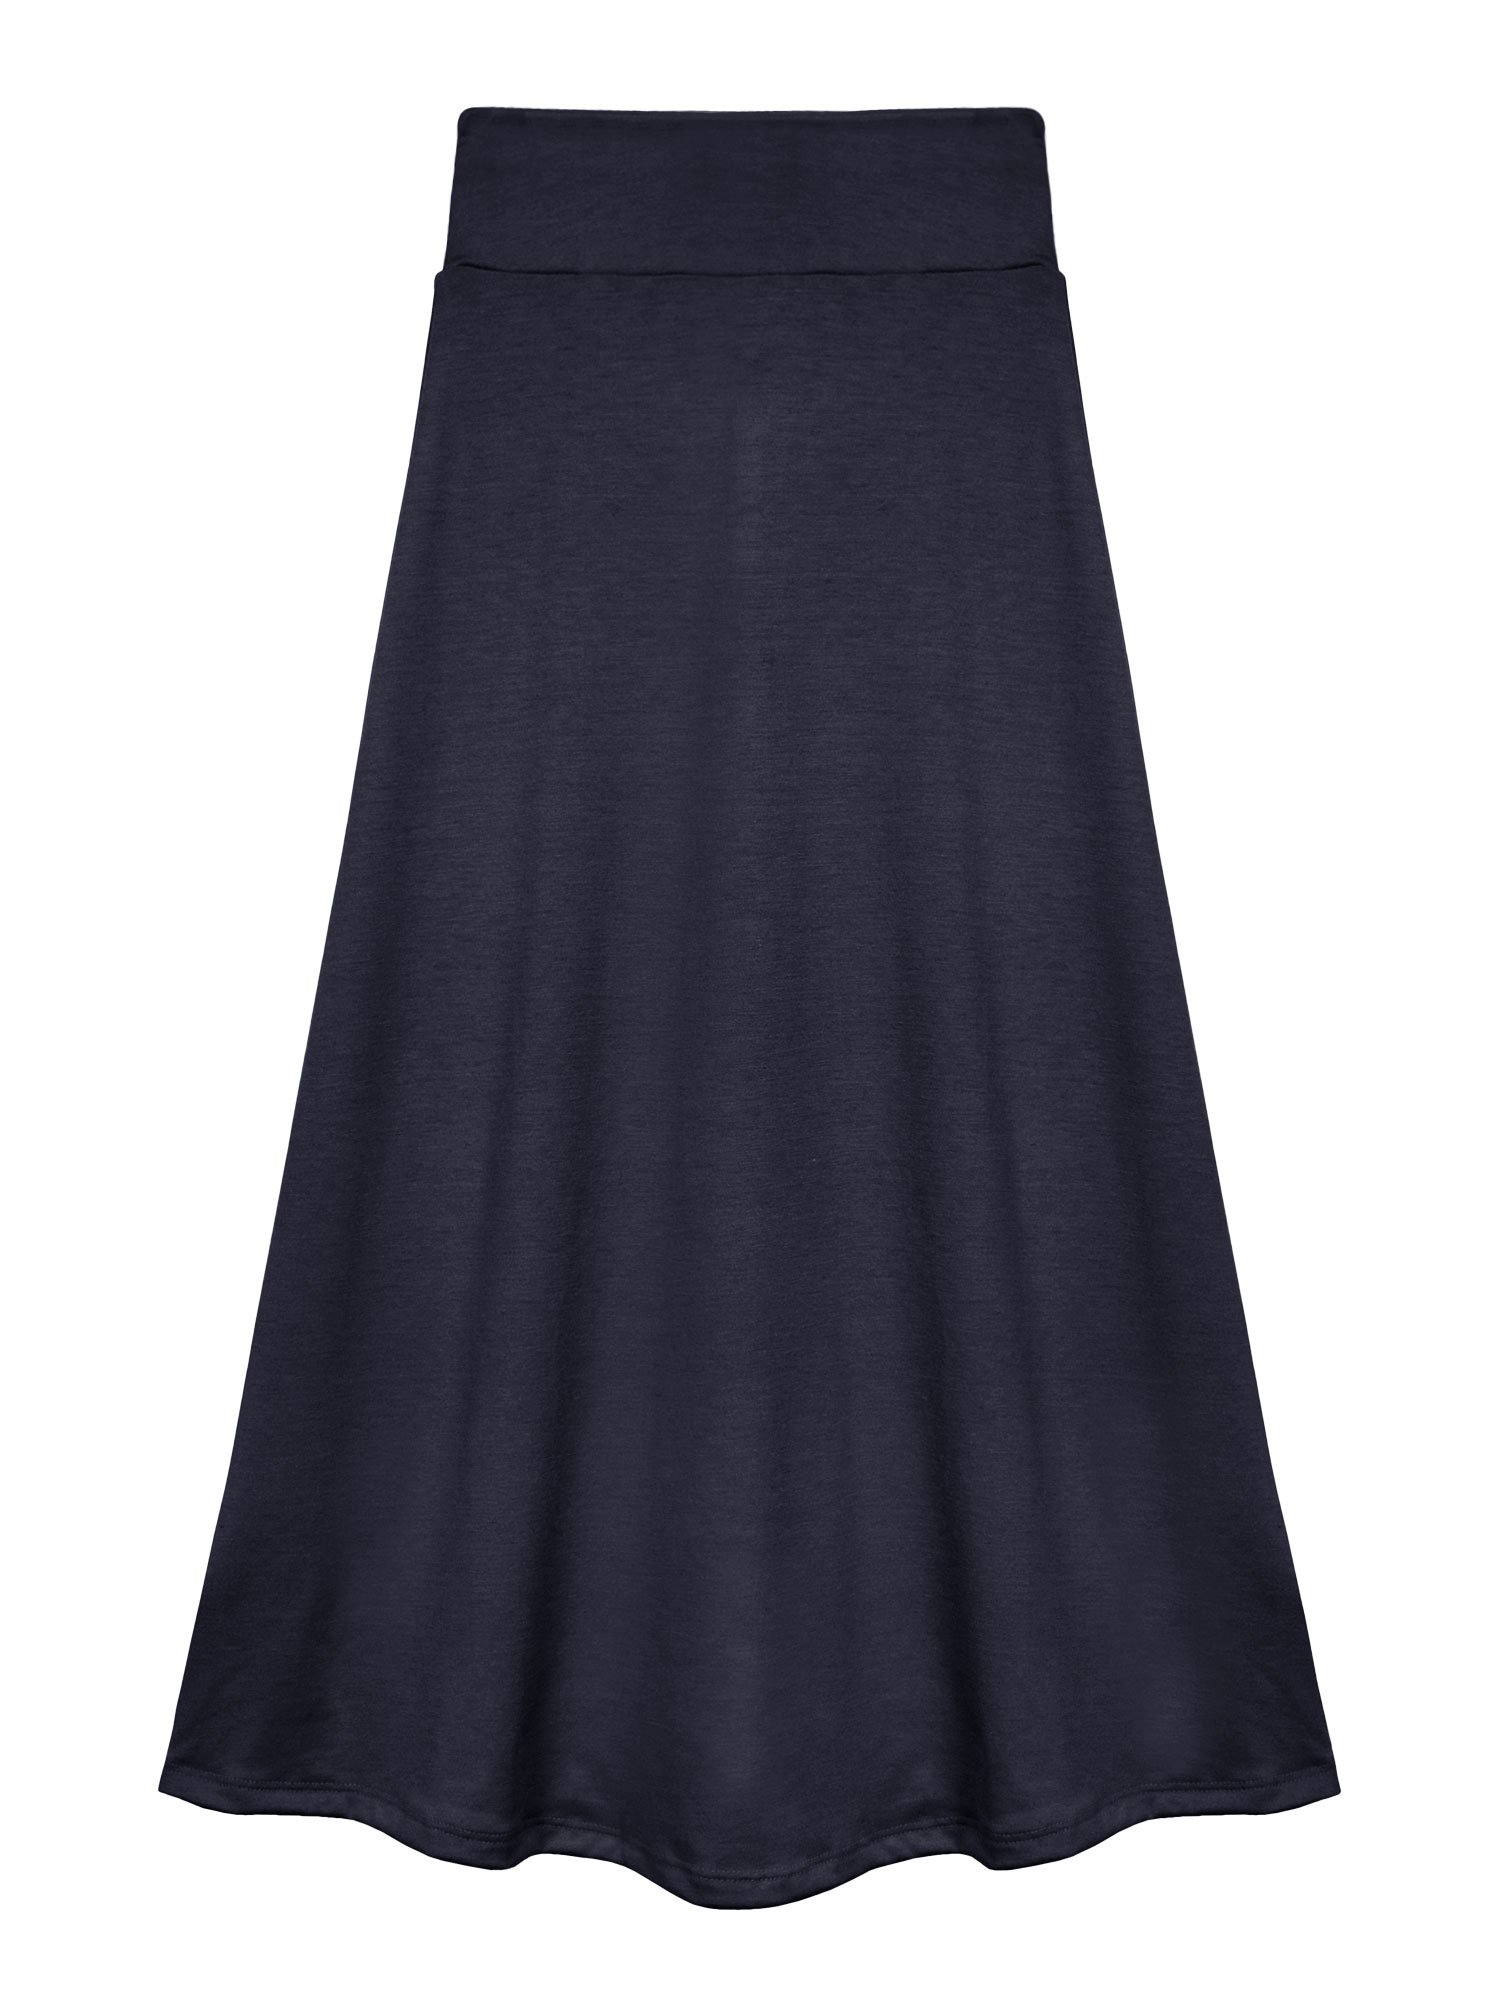 Bello Giovane Girls 7-16 Years Solid Maxi Skirt (X-Large, Navy)